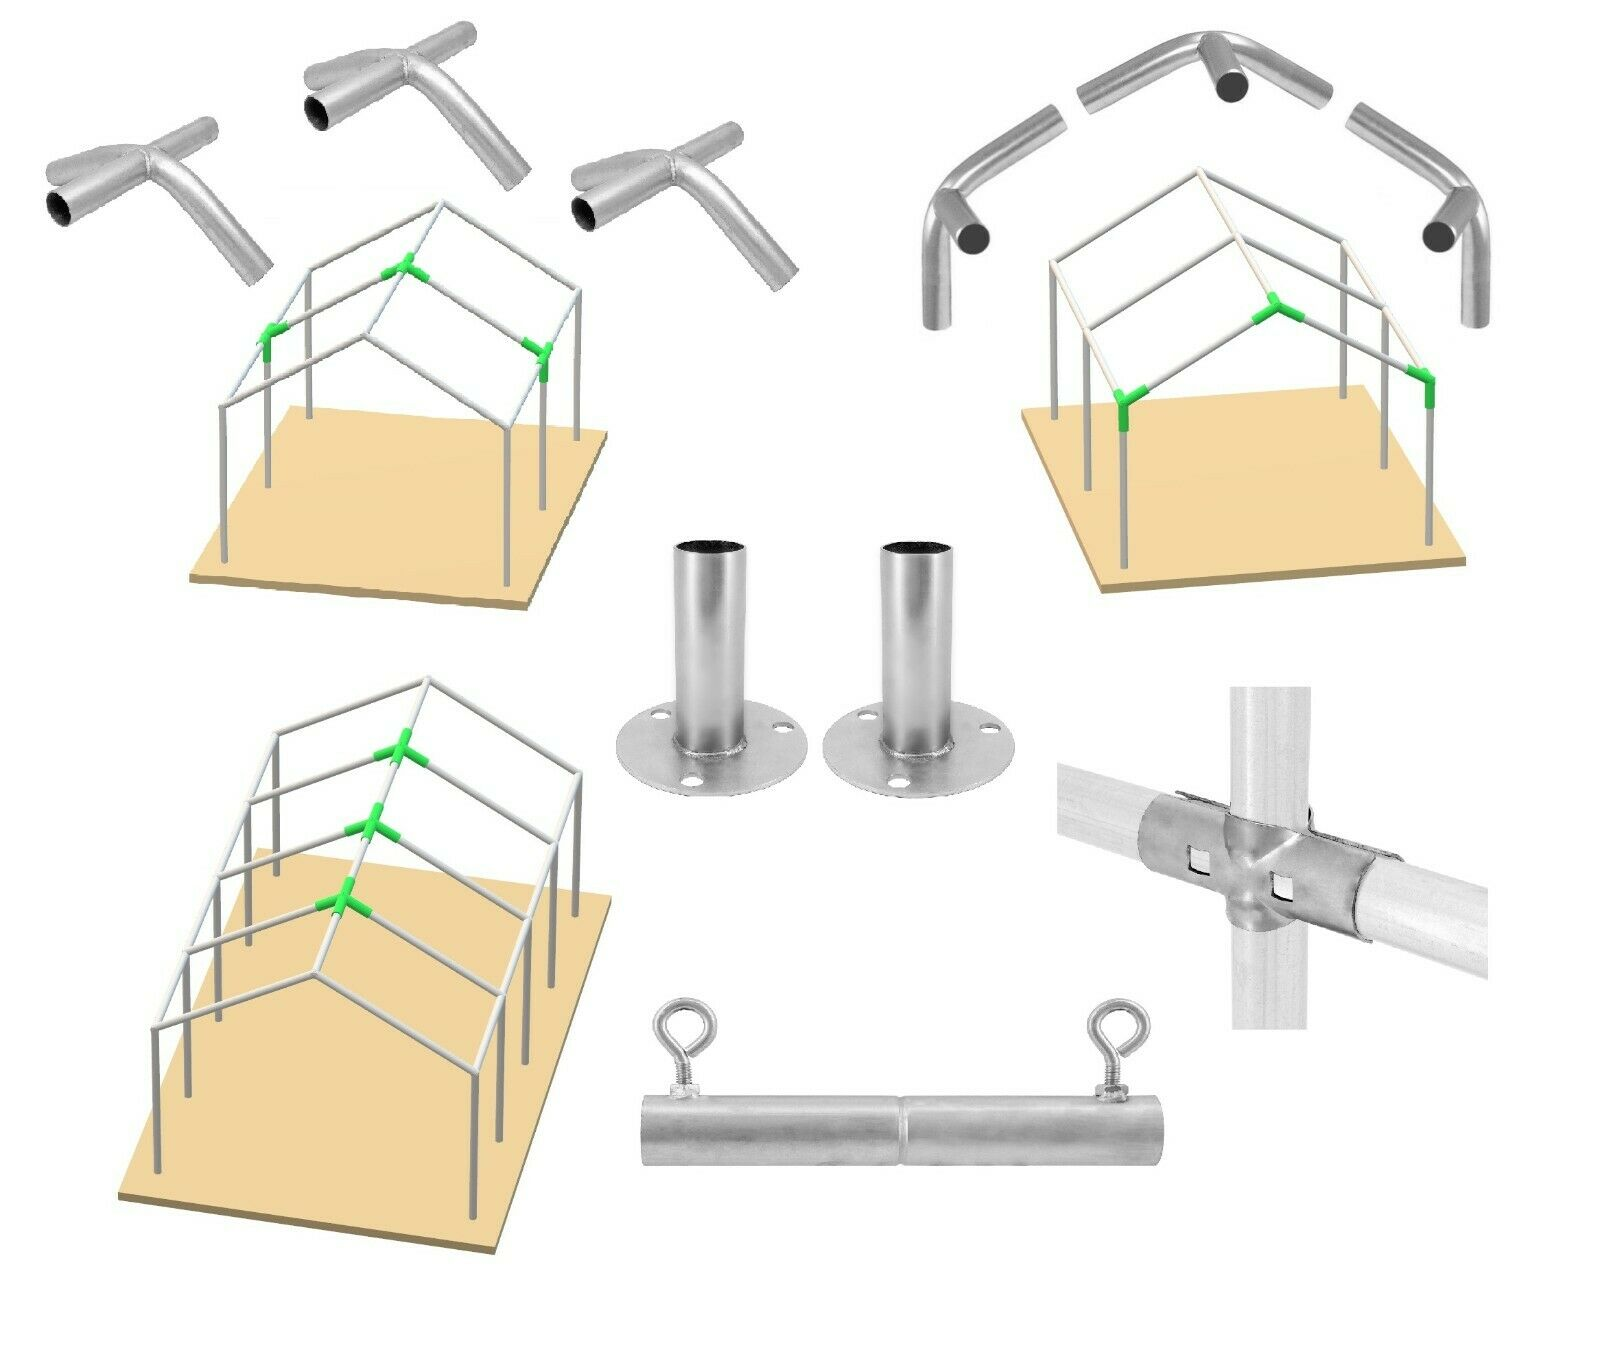 4-Way 1-3//8/'/' ID LOW PEAK Frame Connectors Canopy EAVE Fittings SET of 1-20